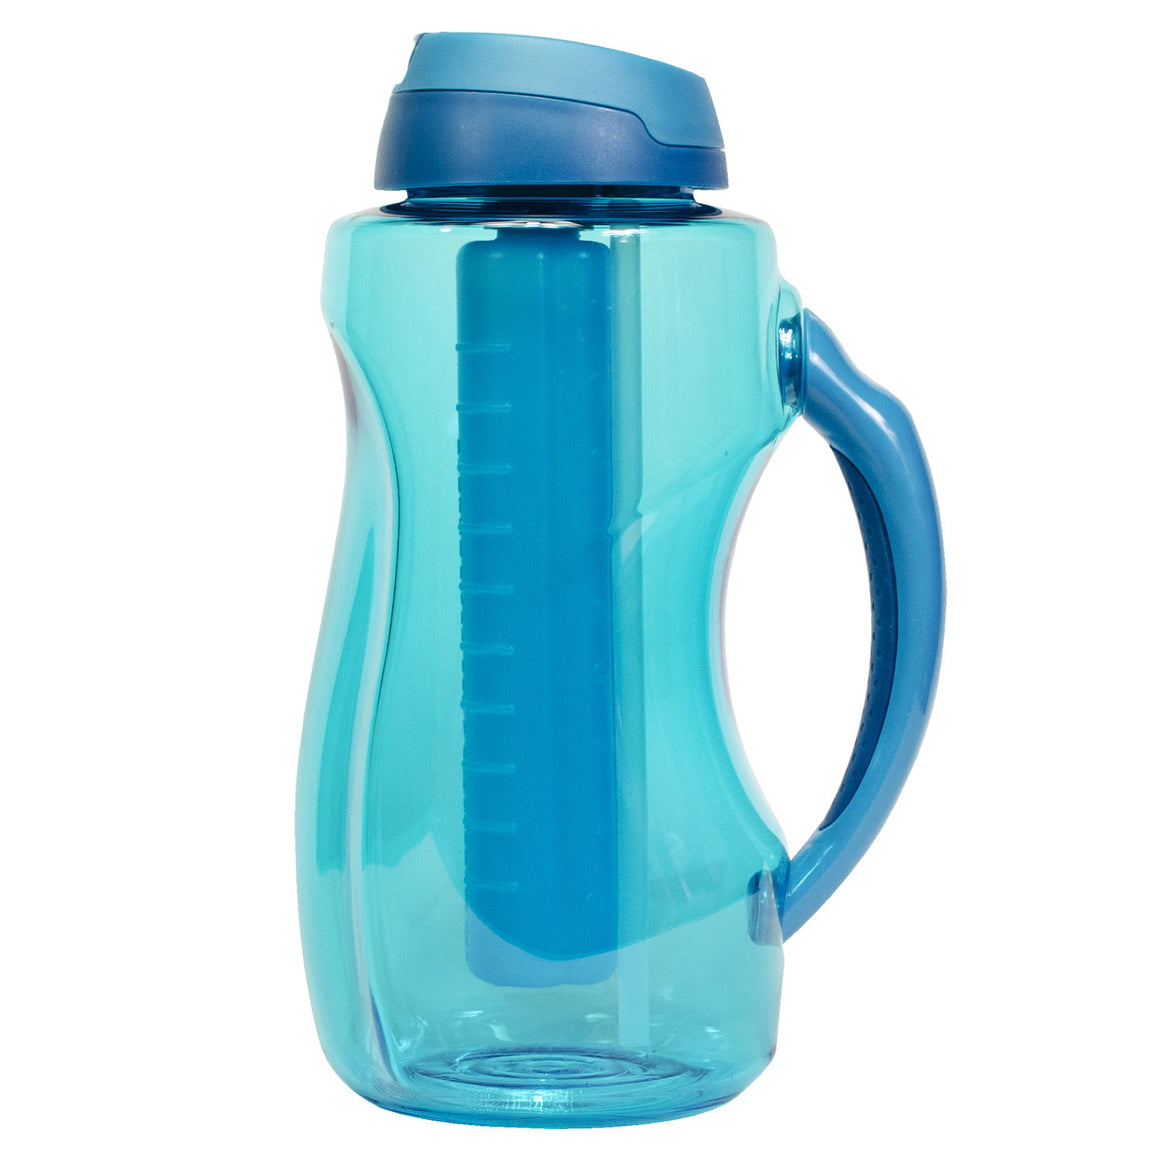 Light Gray Dual Wave 63 Oz Water Bottle at Cool Gear Water Bottles